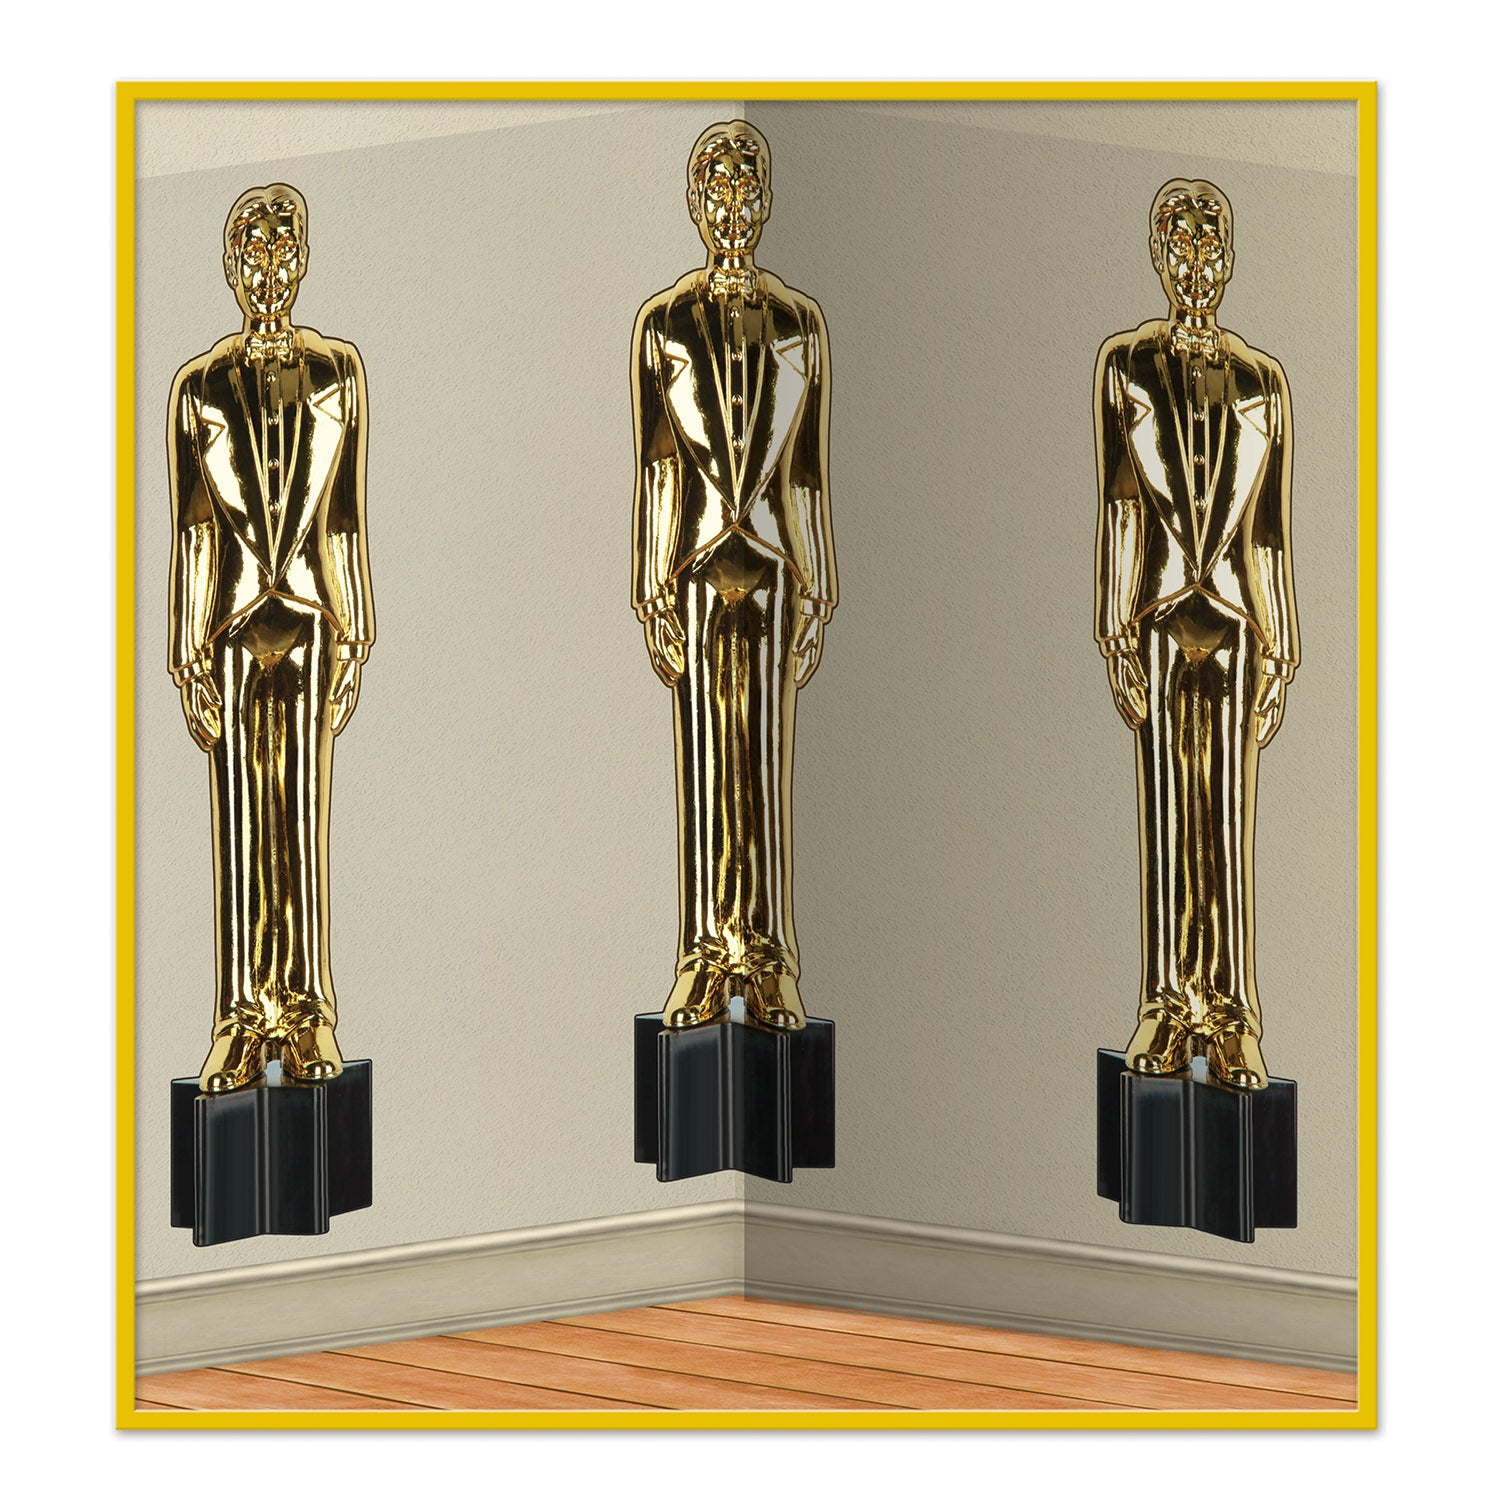 Awards Night Male Statuettes Backdrop by Beistle - Awards Night Theme Decorations